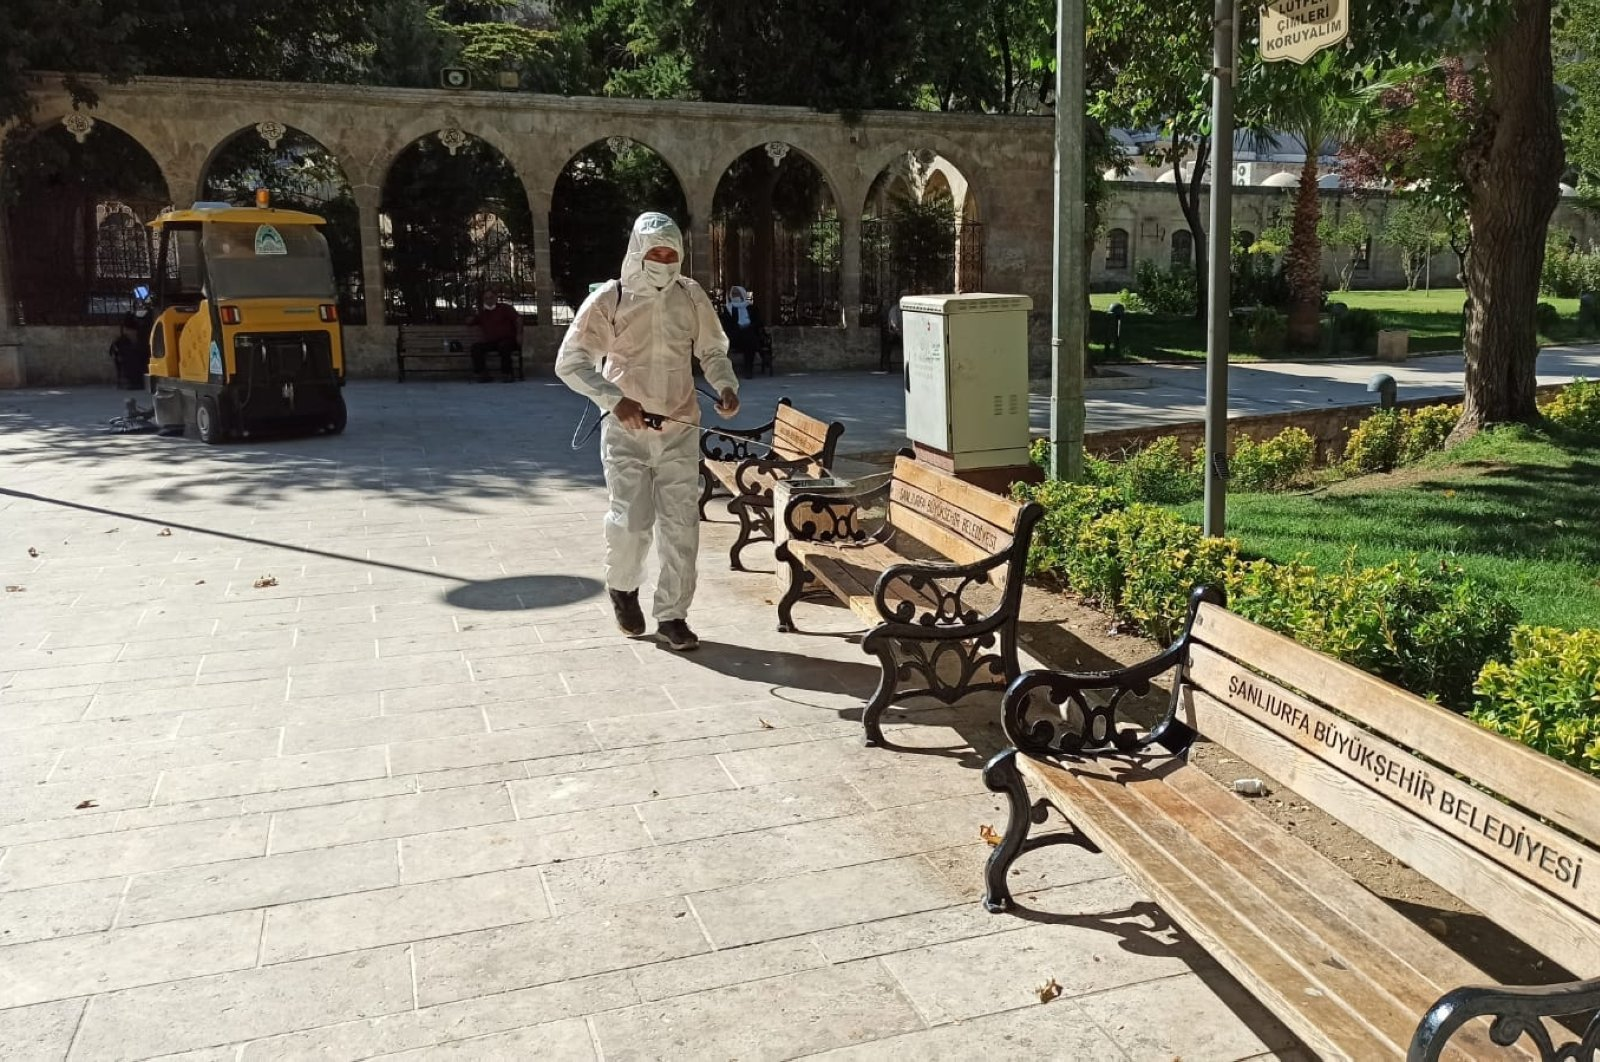 A worker disinfects benches as a precaution against COVID-19 at Balıklıgöl, a popular tourist attraction in Şanlıurfa, southeastern Turkey, Oct. 8, 2020. (AA Photo)